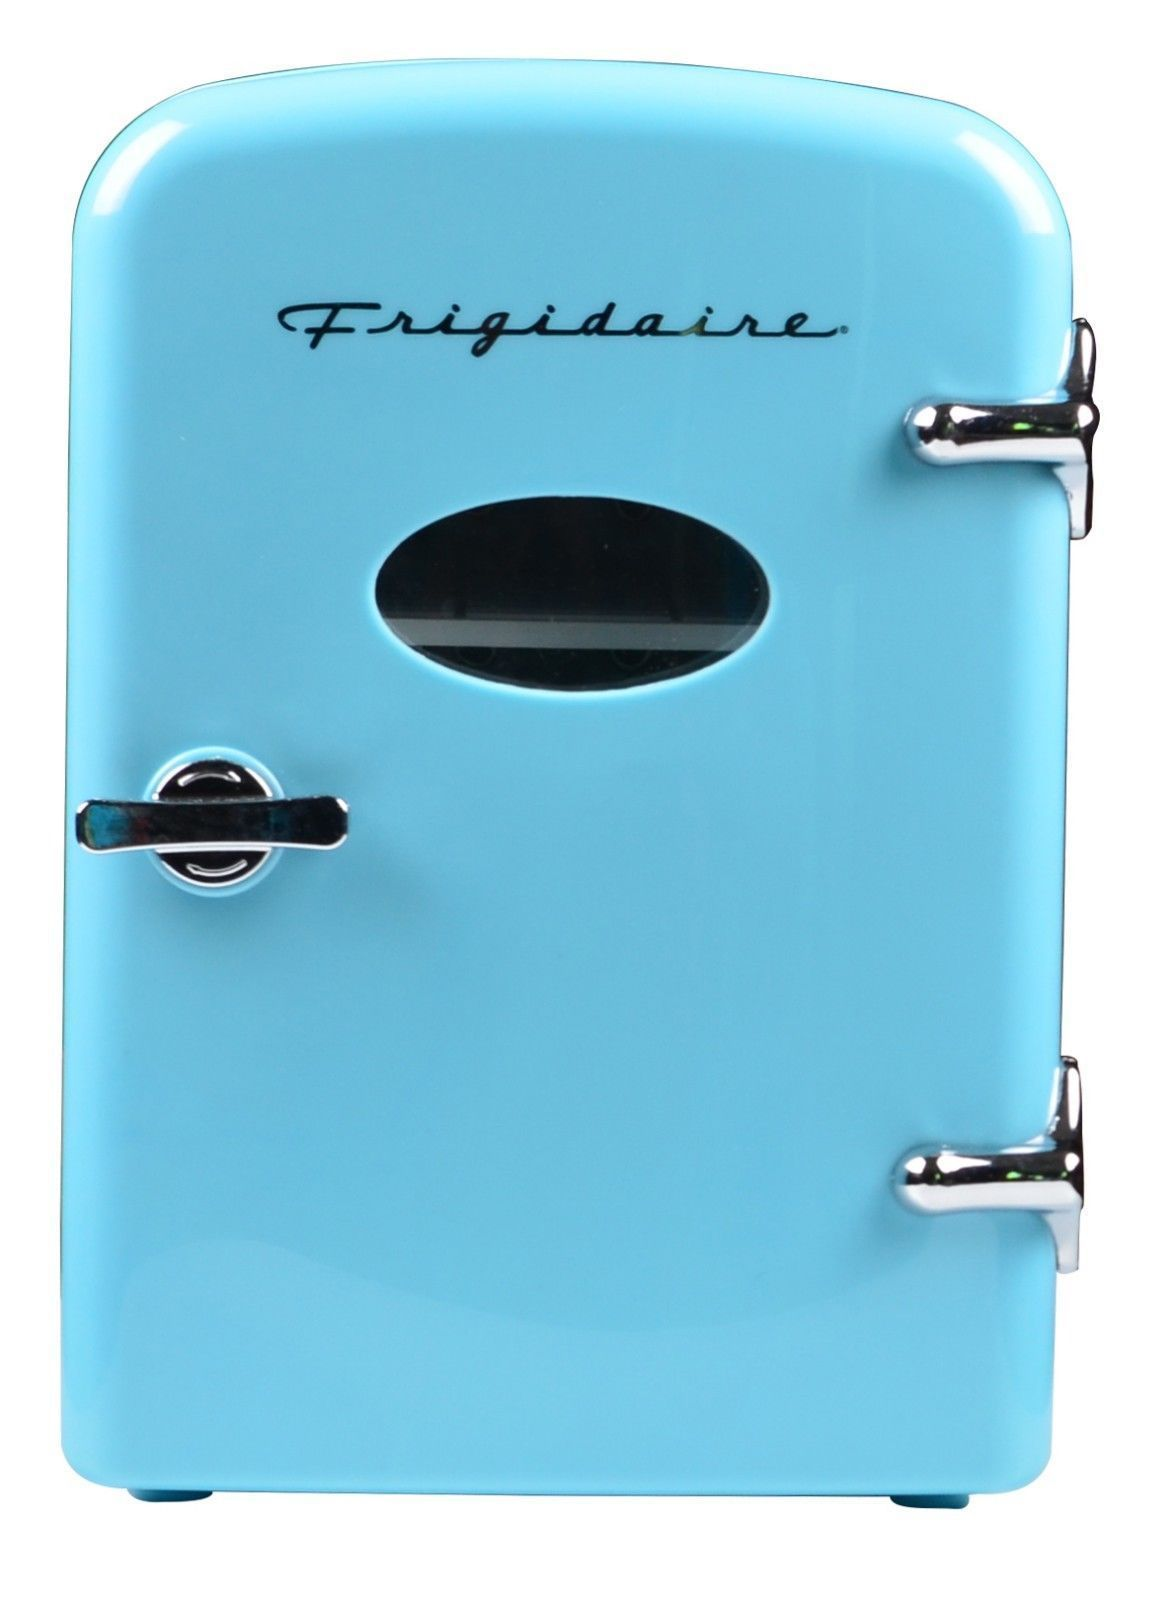 Frigidaire Mini Retro Beverage Fridge Blue Holds 6 Pack Mini Fridge Beverage Refrigerator Beverage Fridge